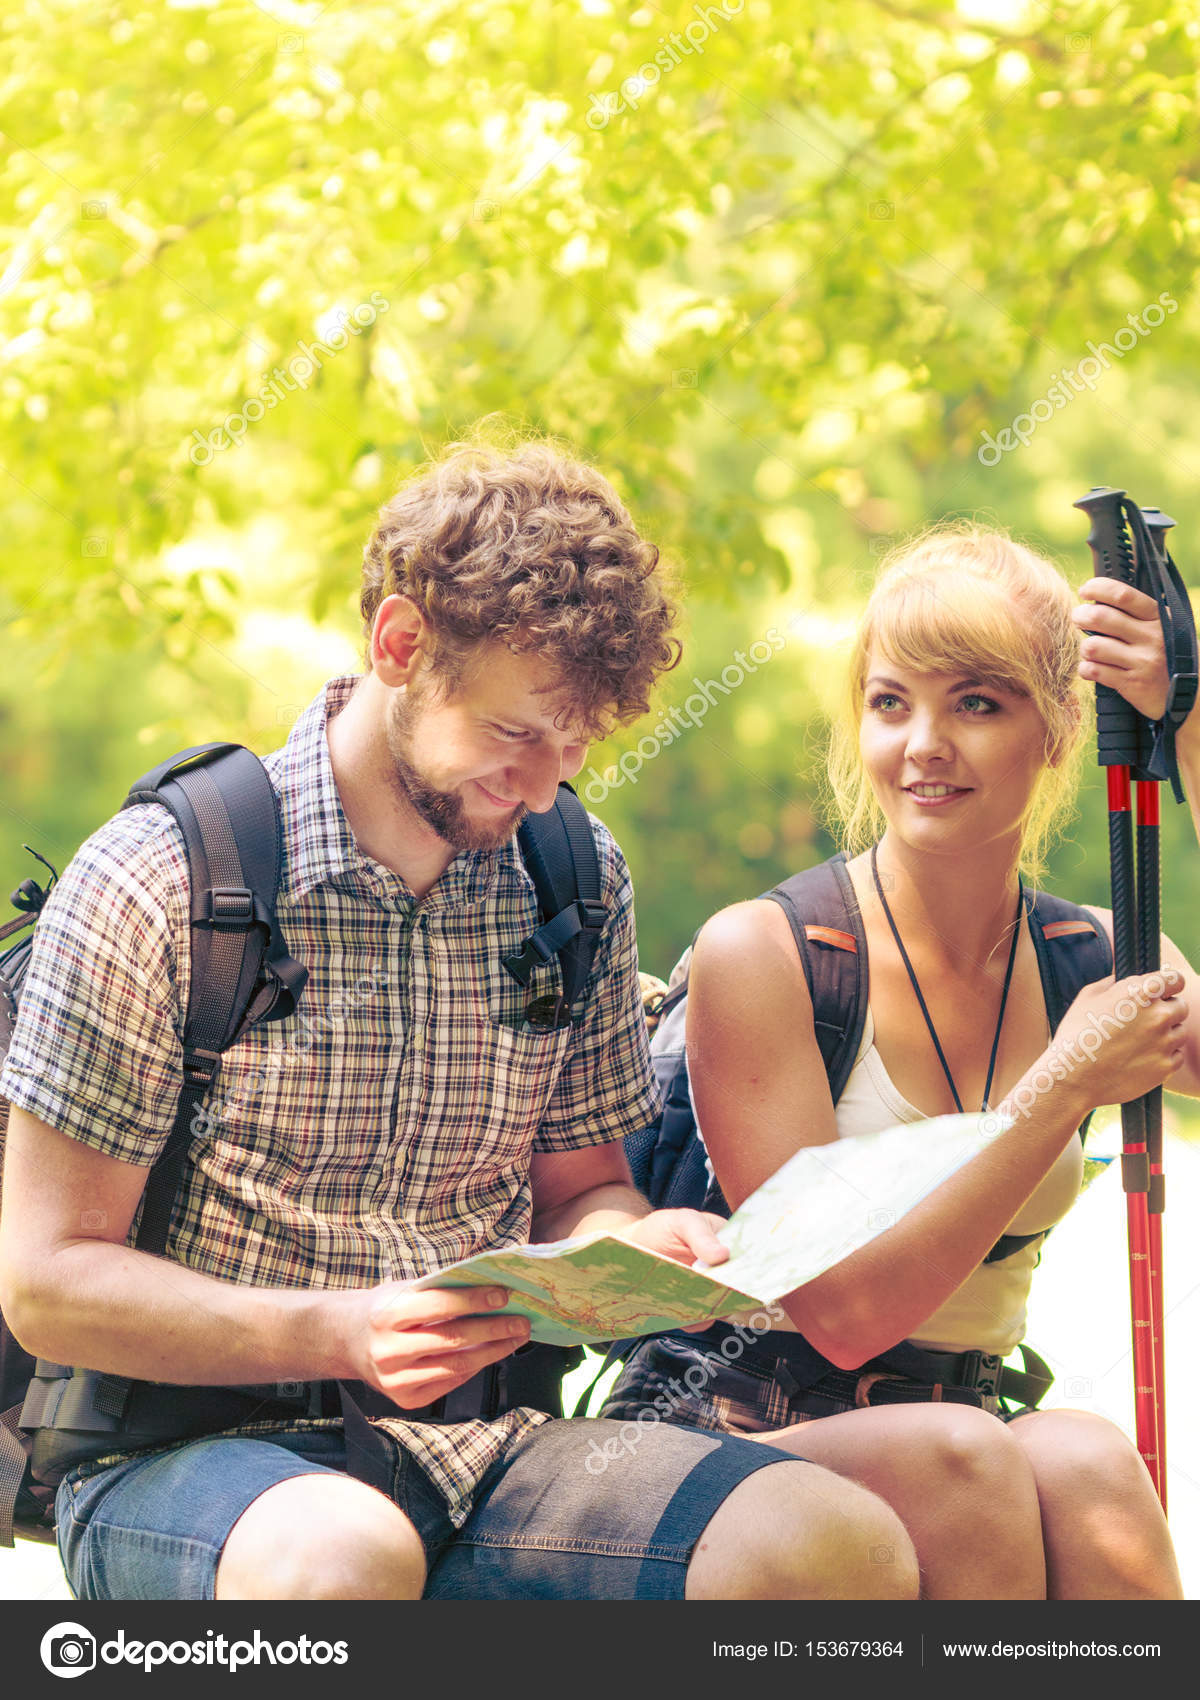 dating Backpackers